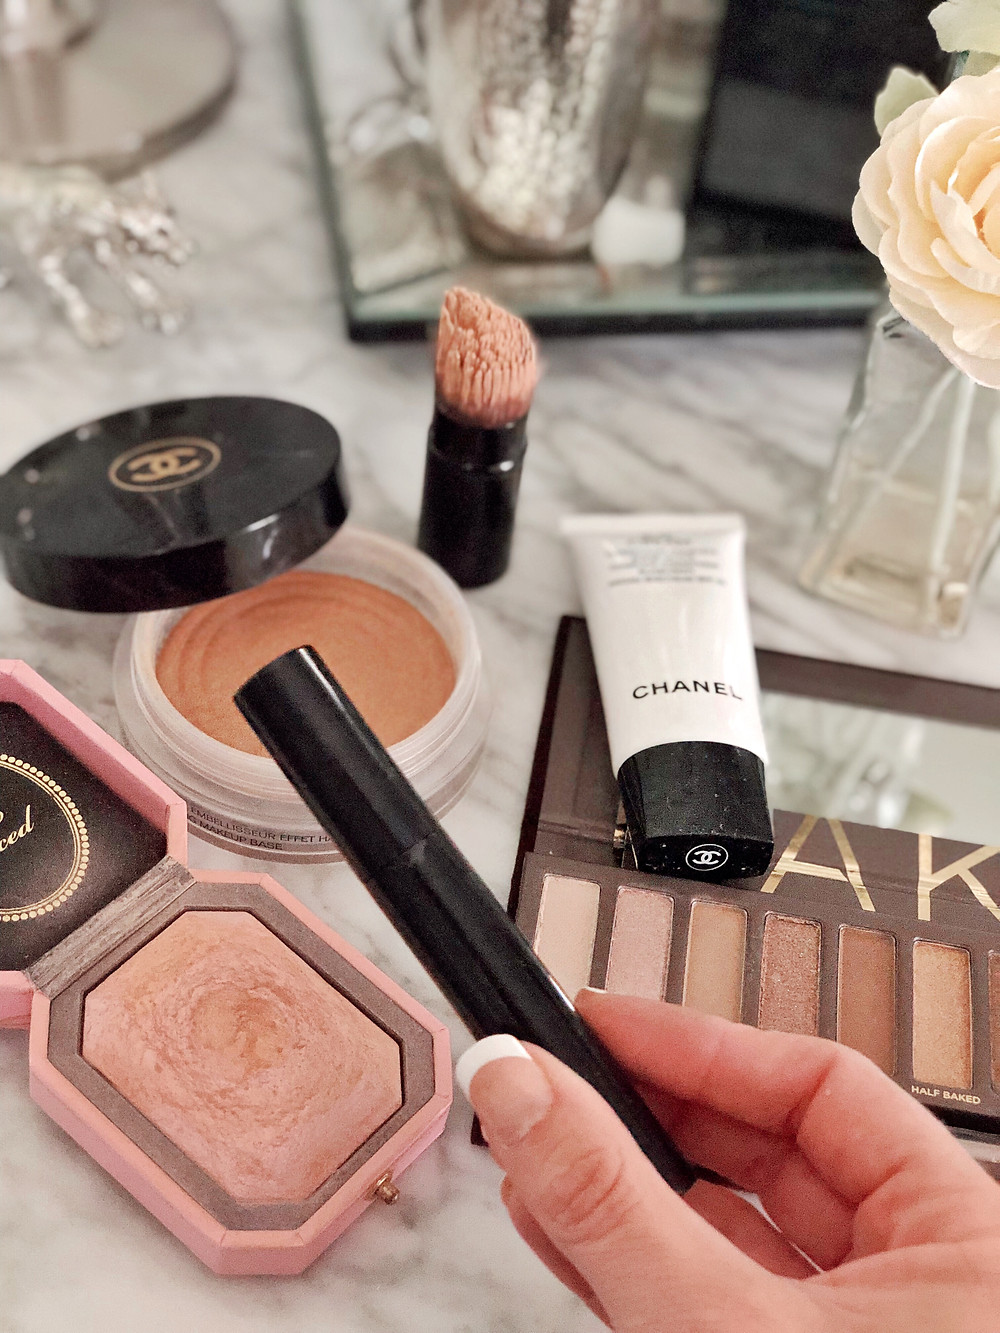 Five minute daytime makeup routine using five products, beauty and fashion blogger, Tony Townie